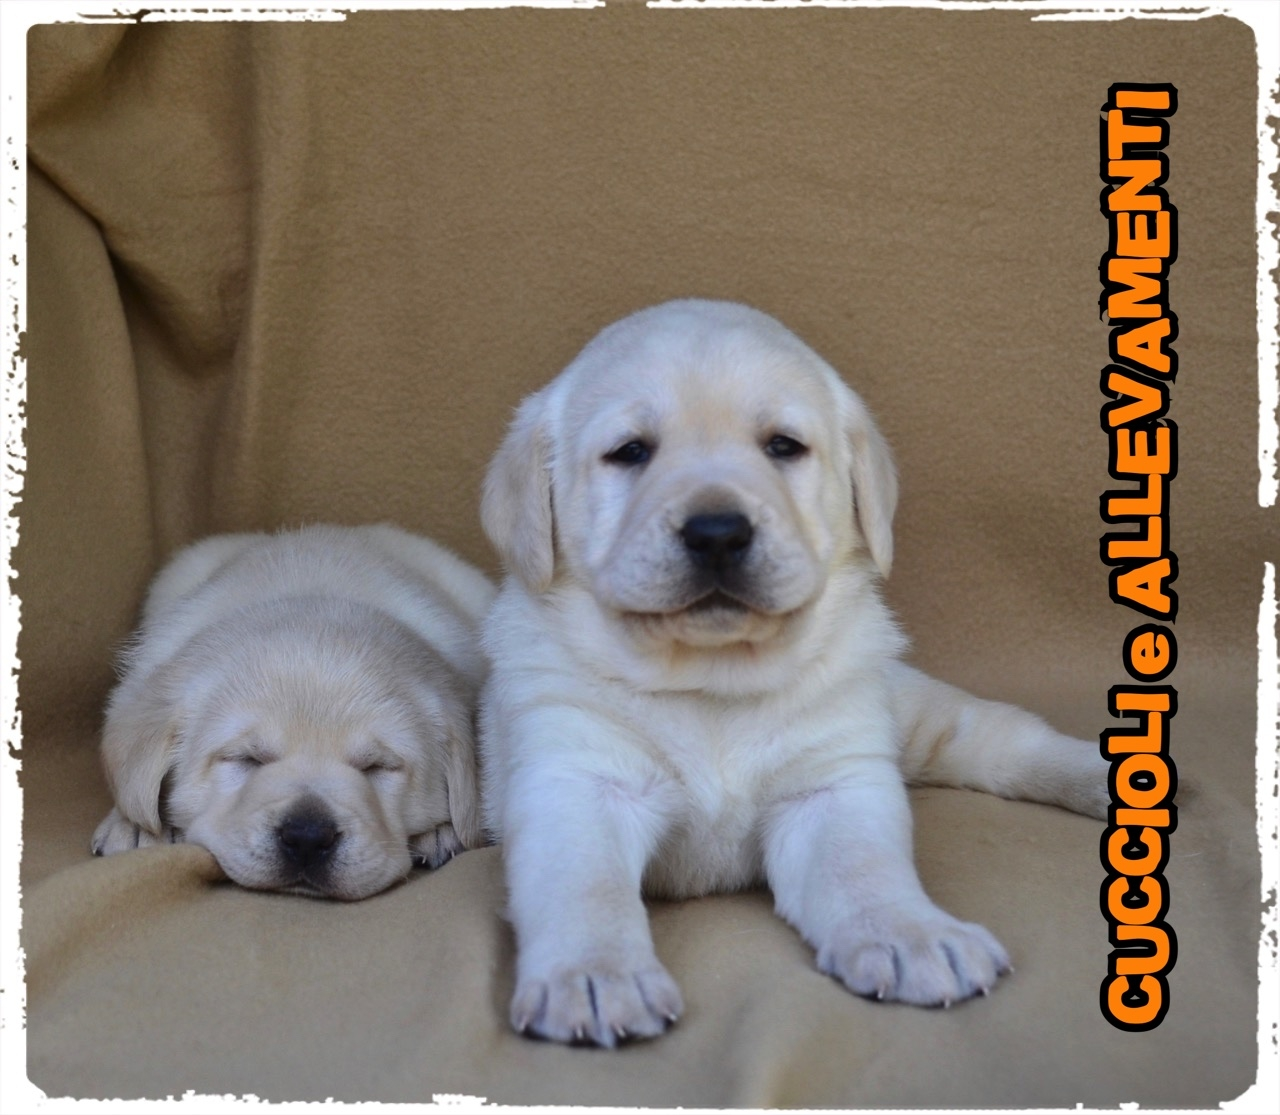 Labrador Retriever 19_wm